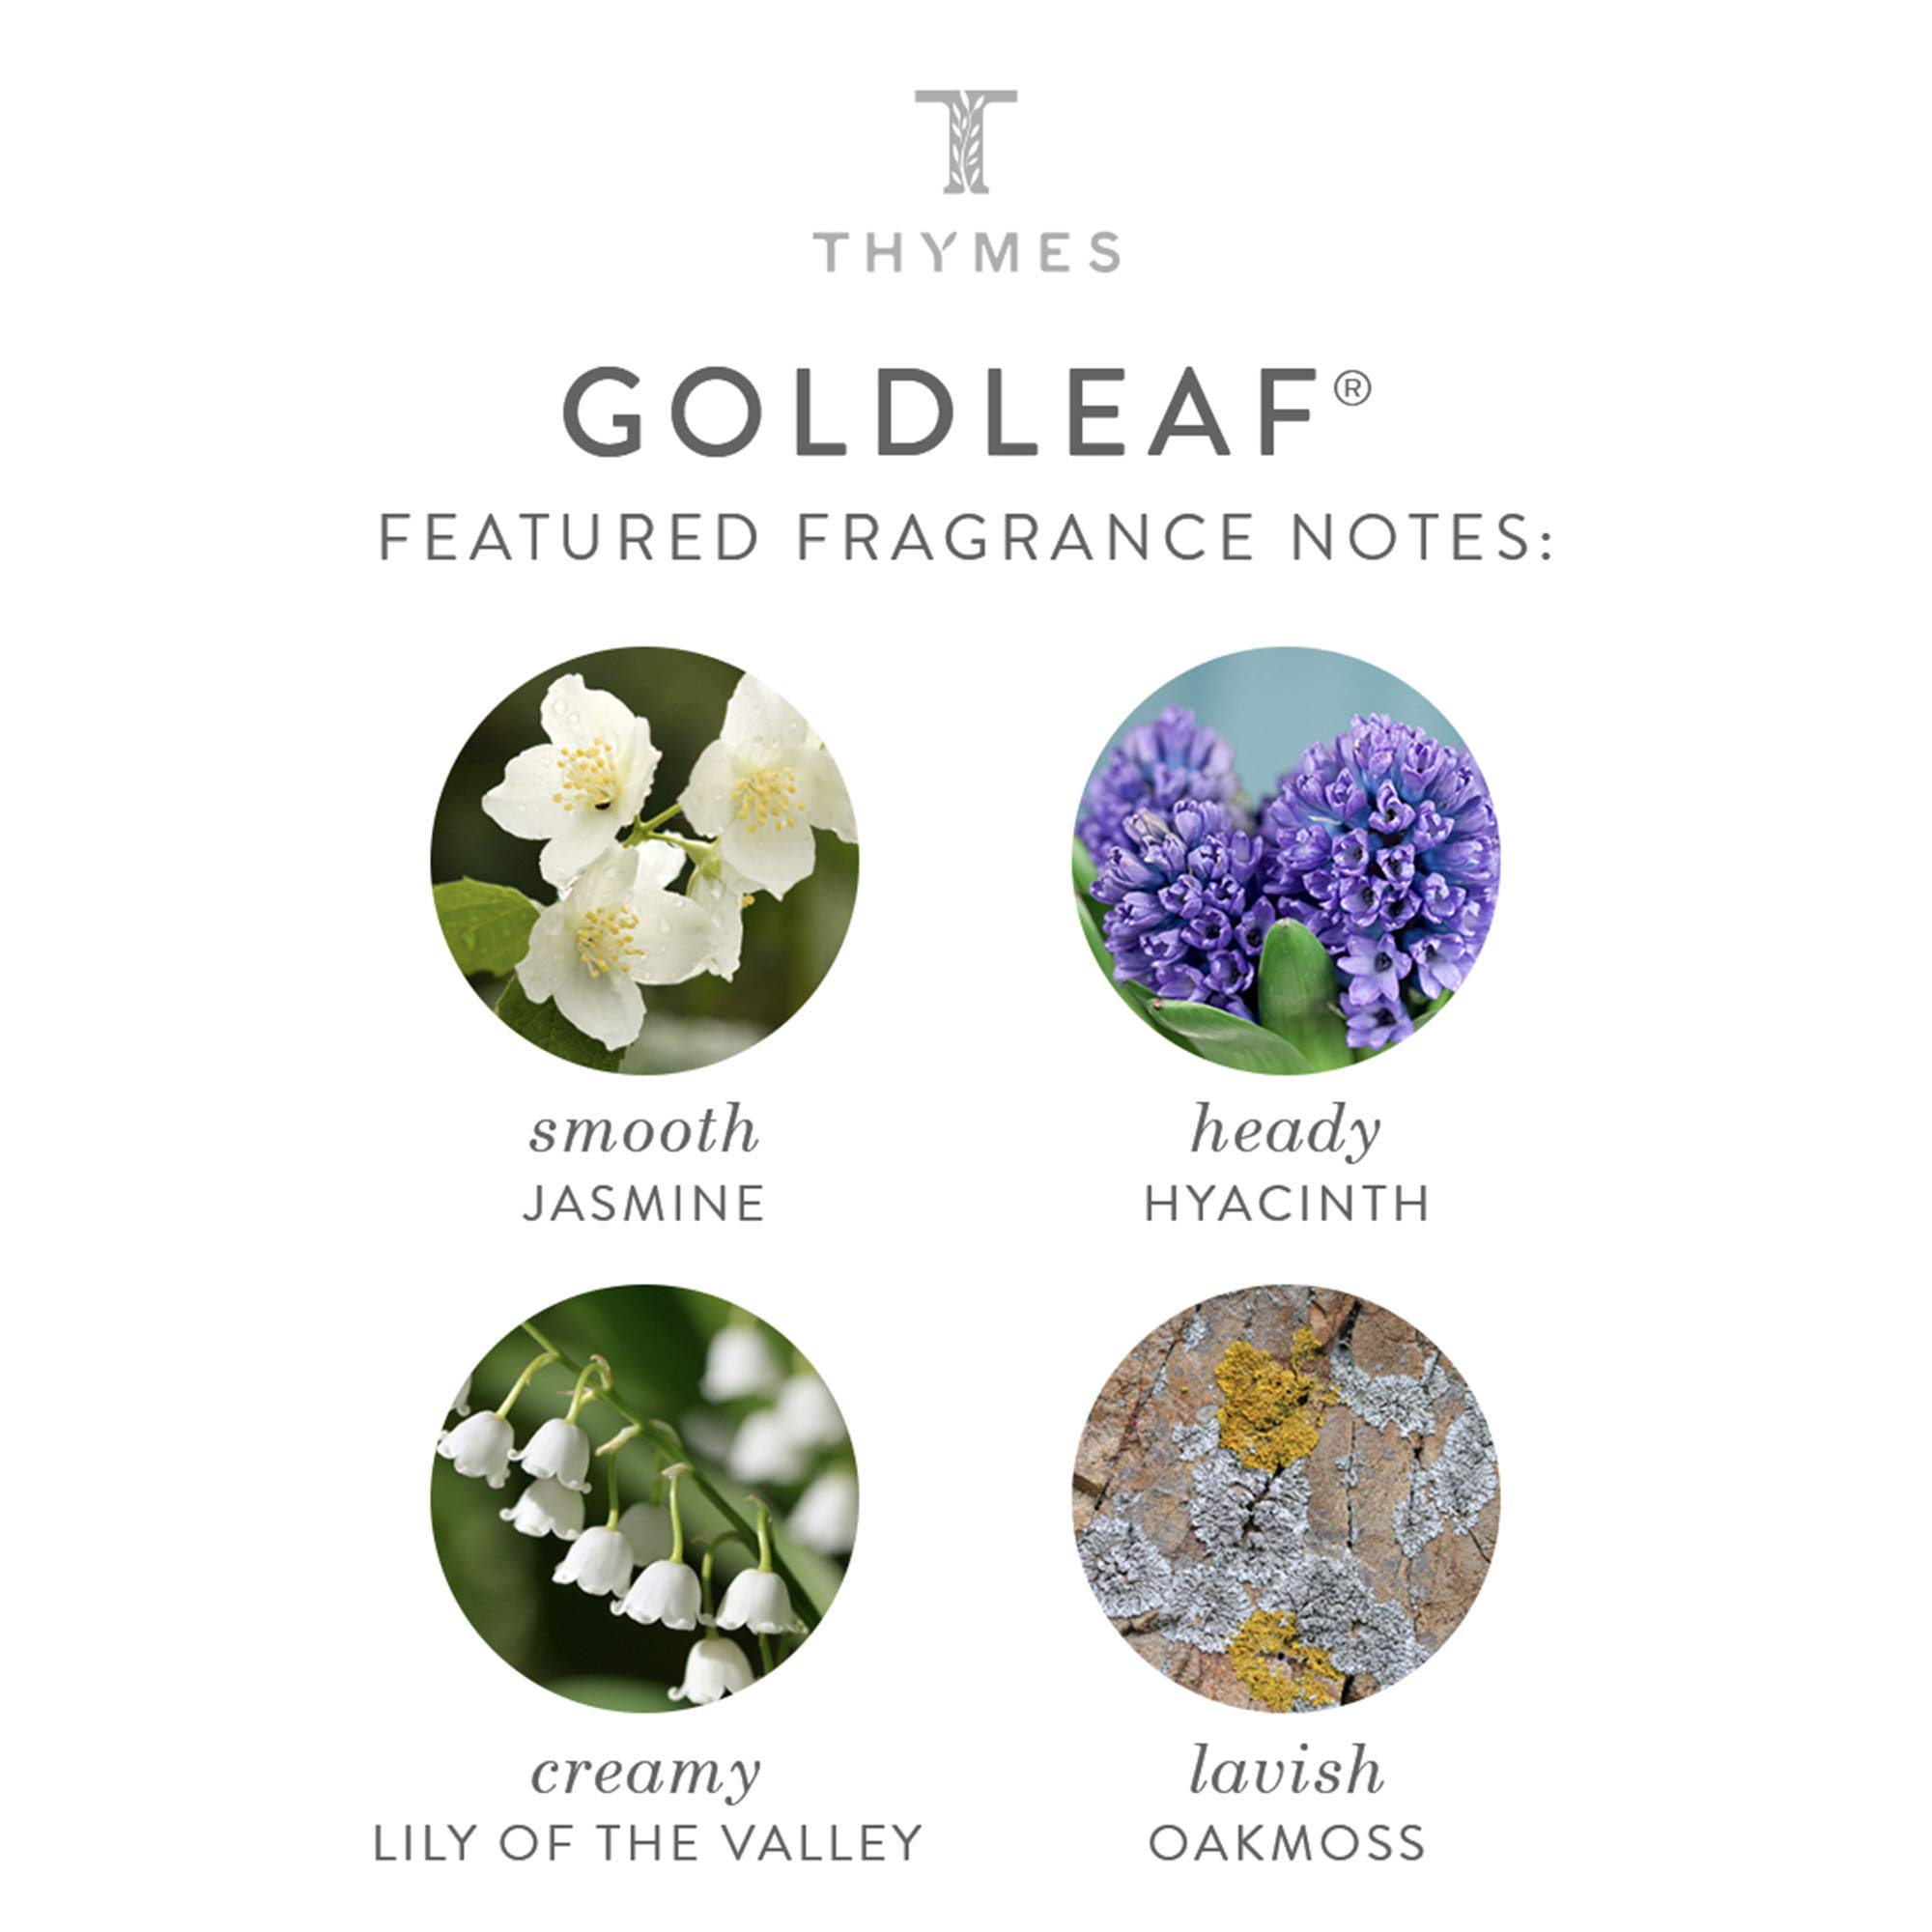 Thymes - Goldleaf Home Fragrance Mist (2-Pack) with Free Vetiver Rosewood Sample Pack- Elegant Floral Scented Room Spray - 3 oz by Thymes (Image #3)